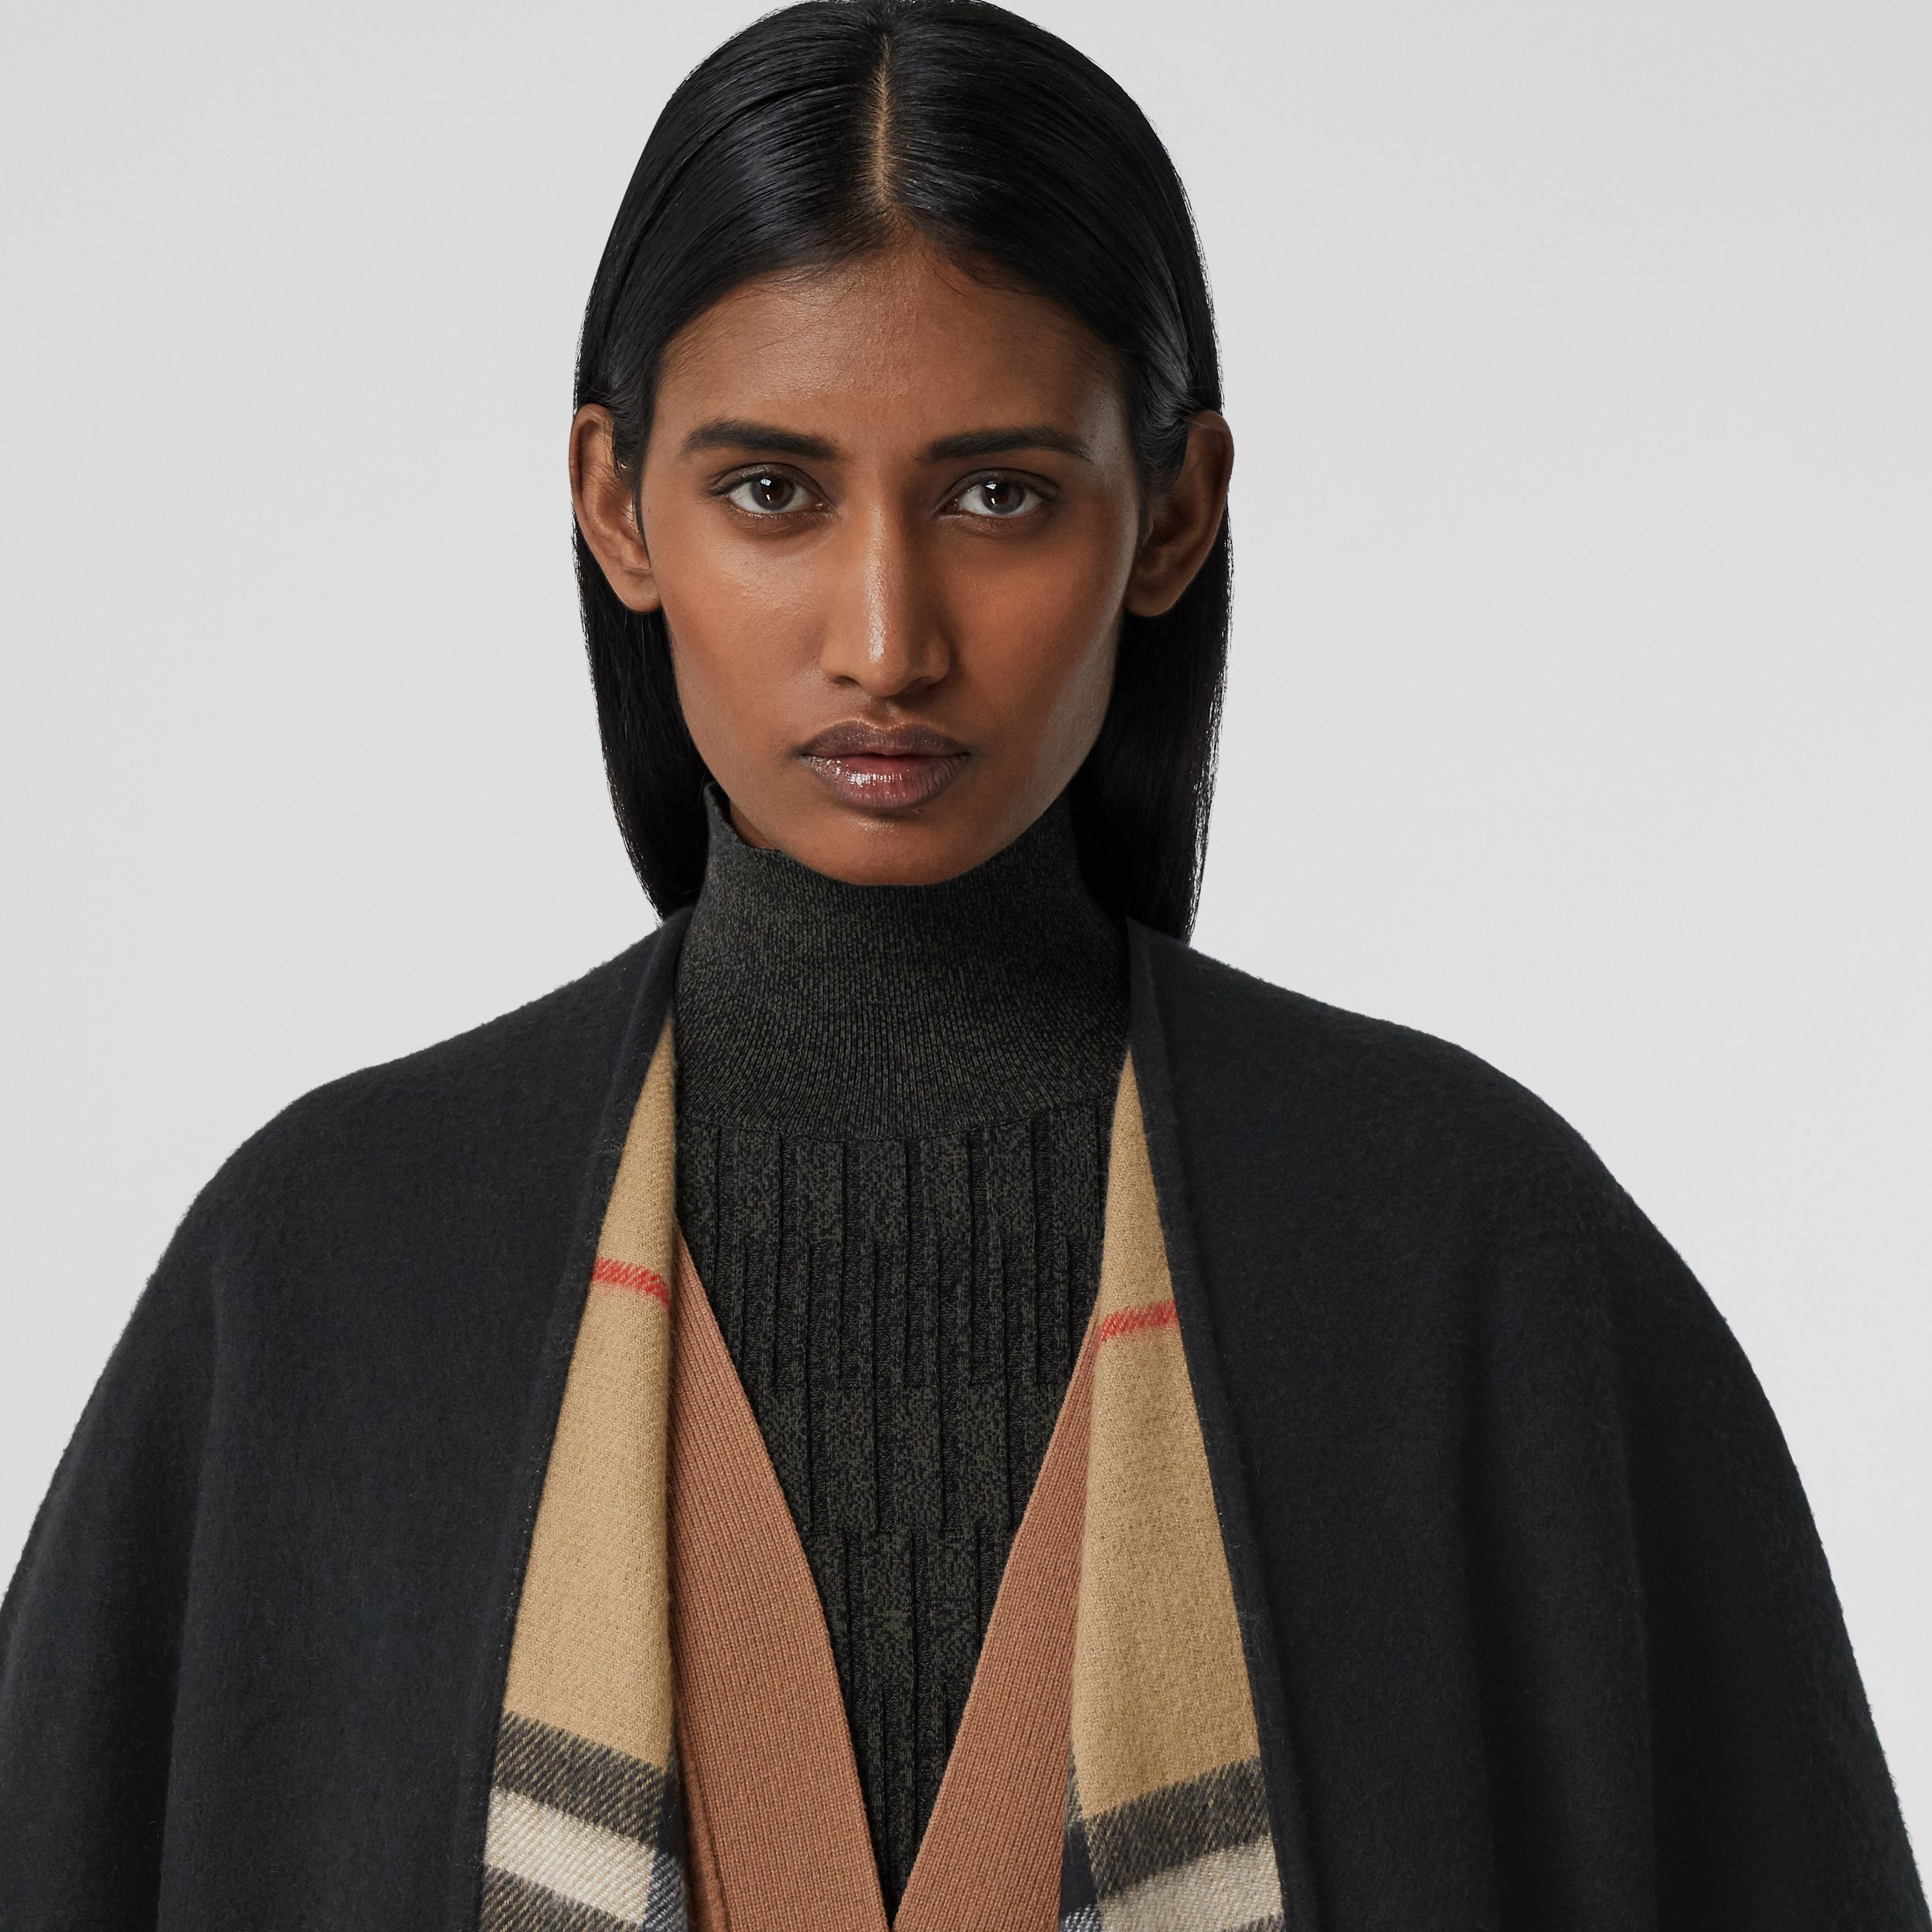 Check-lined Cashmere Merino Wool Cape in Black - Women | Burberry United Kingdom - 2